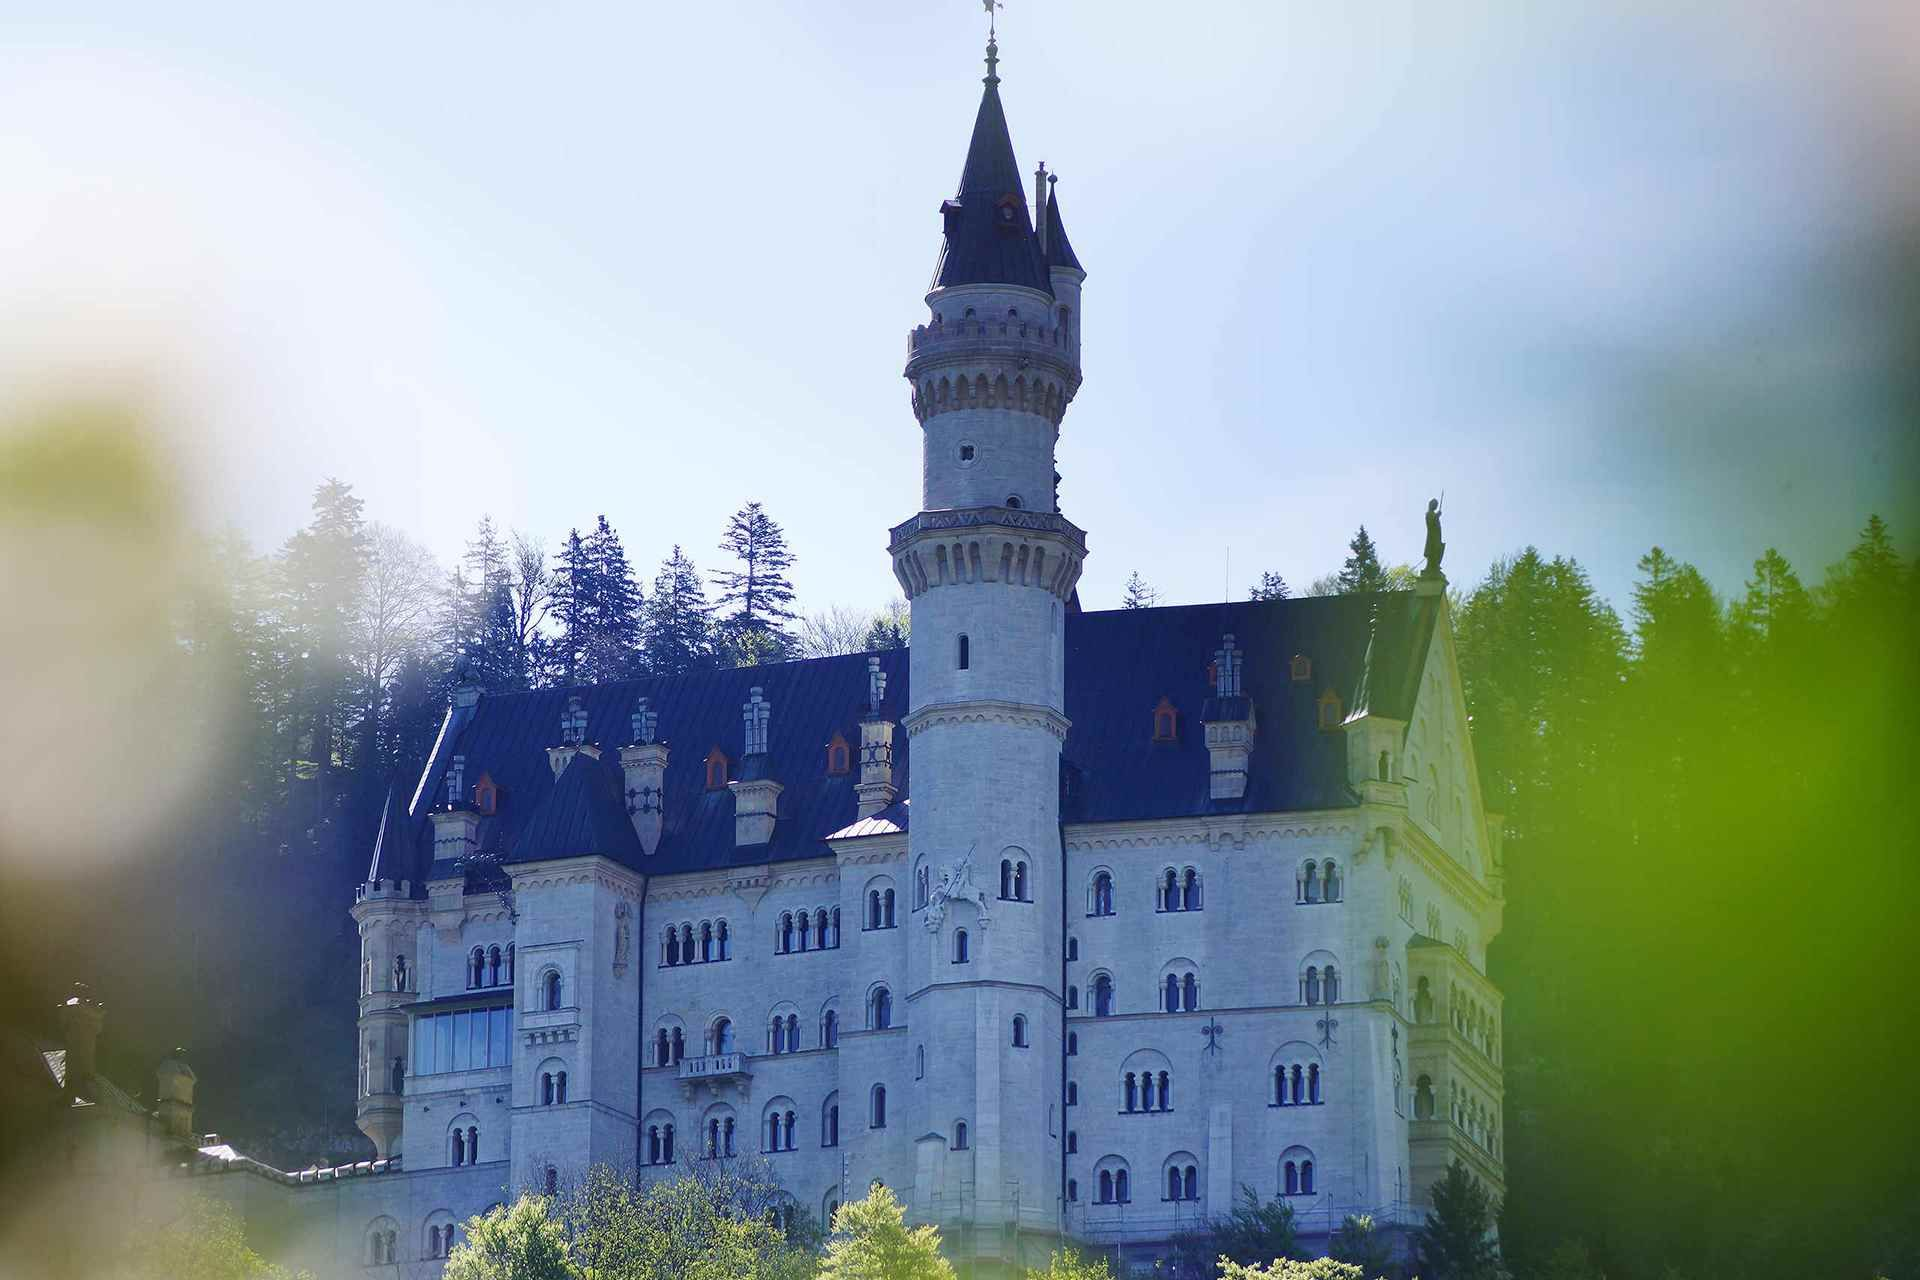 The Tegelberg Cable Car And Summer Luge Neuschwanstein Schwangau And Hohenschwangau Neuschwanstein Castle Europe Vacation Sightseeing